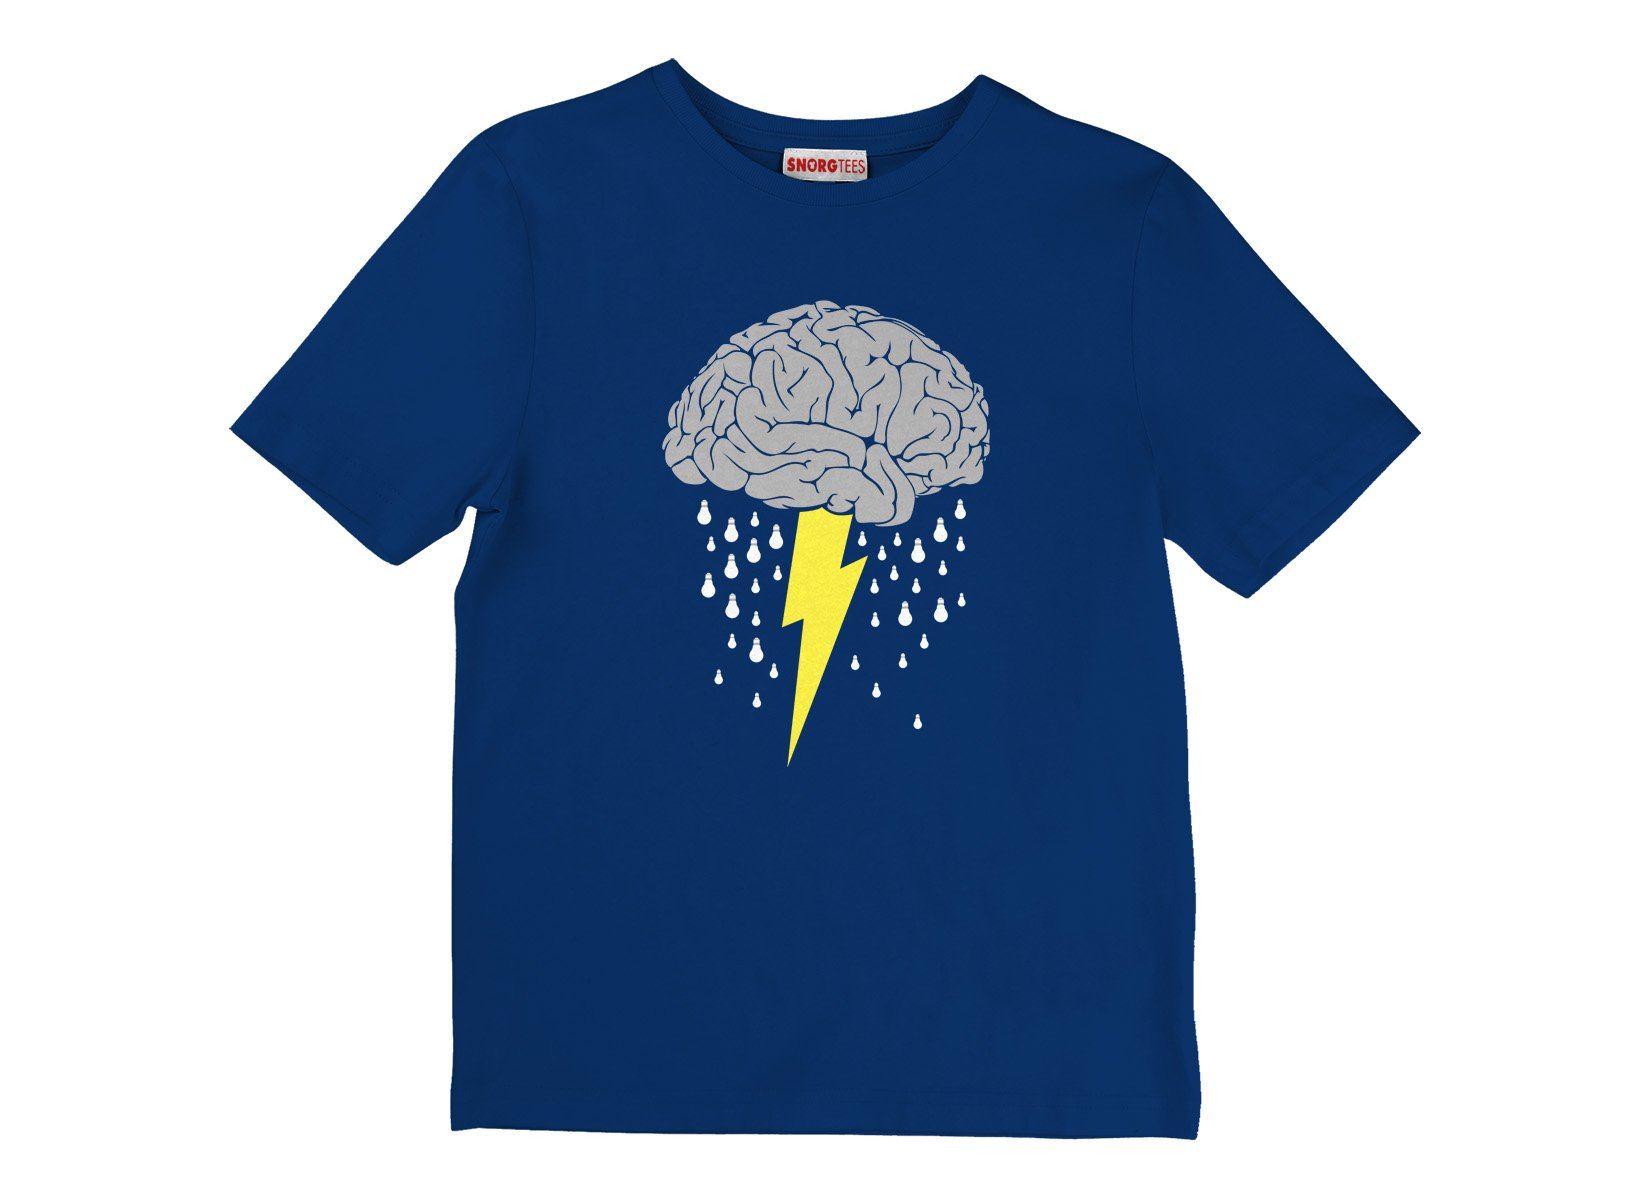 Brainstorm on Kids T-Shirt